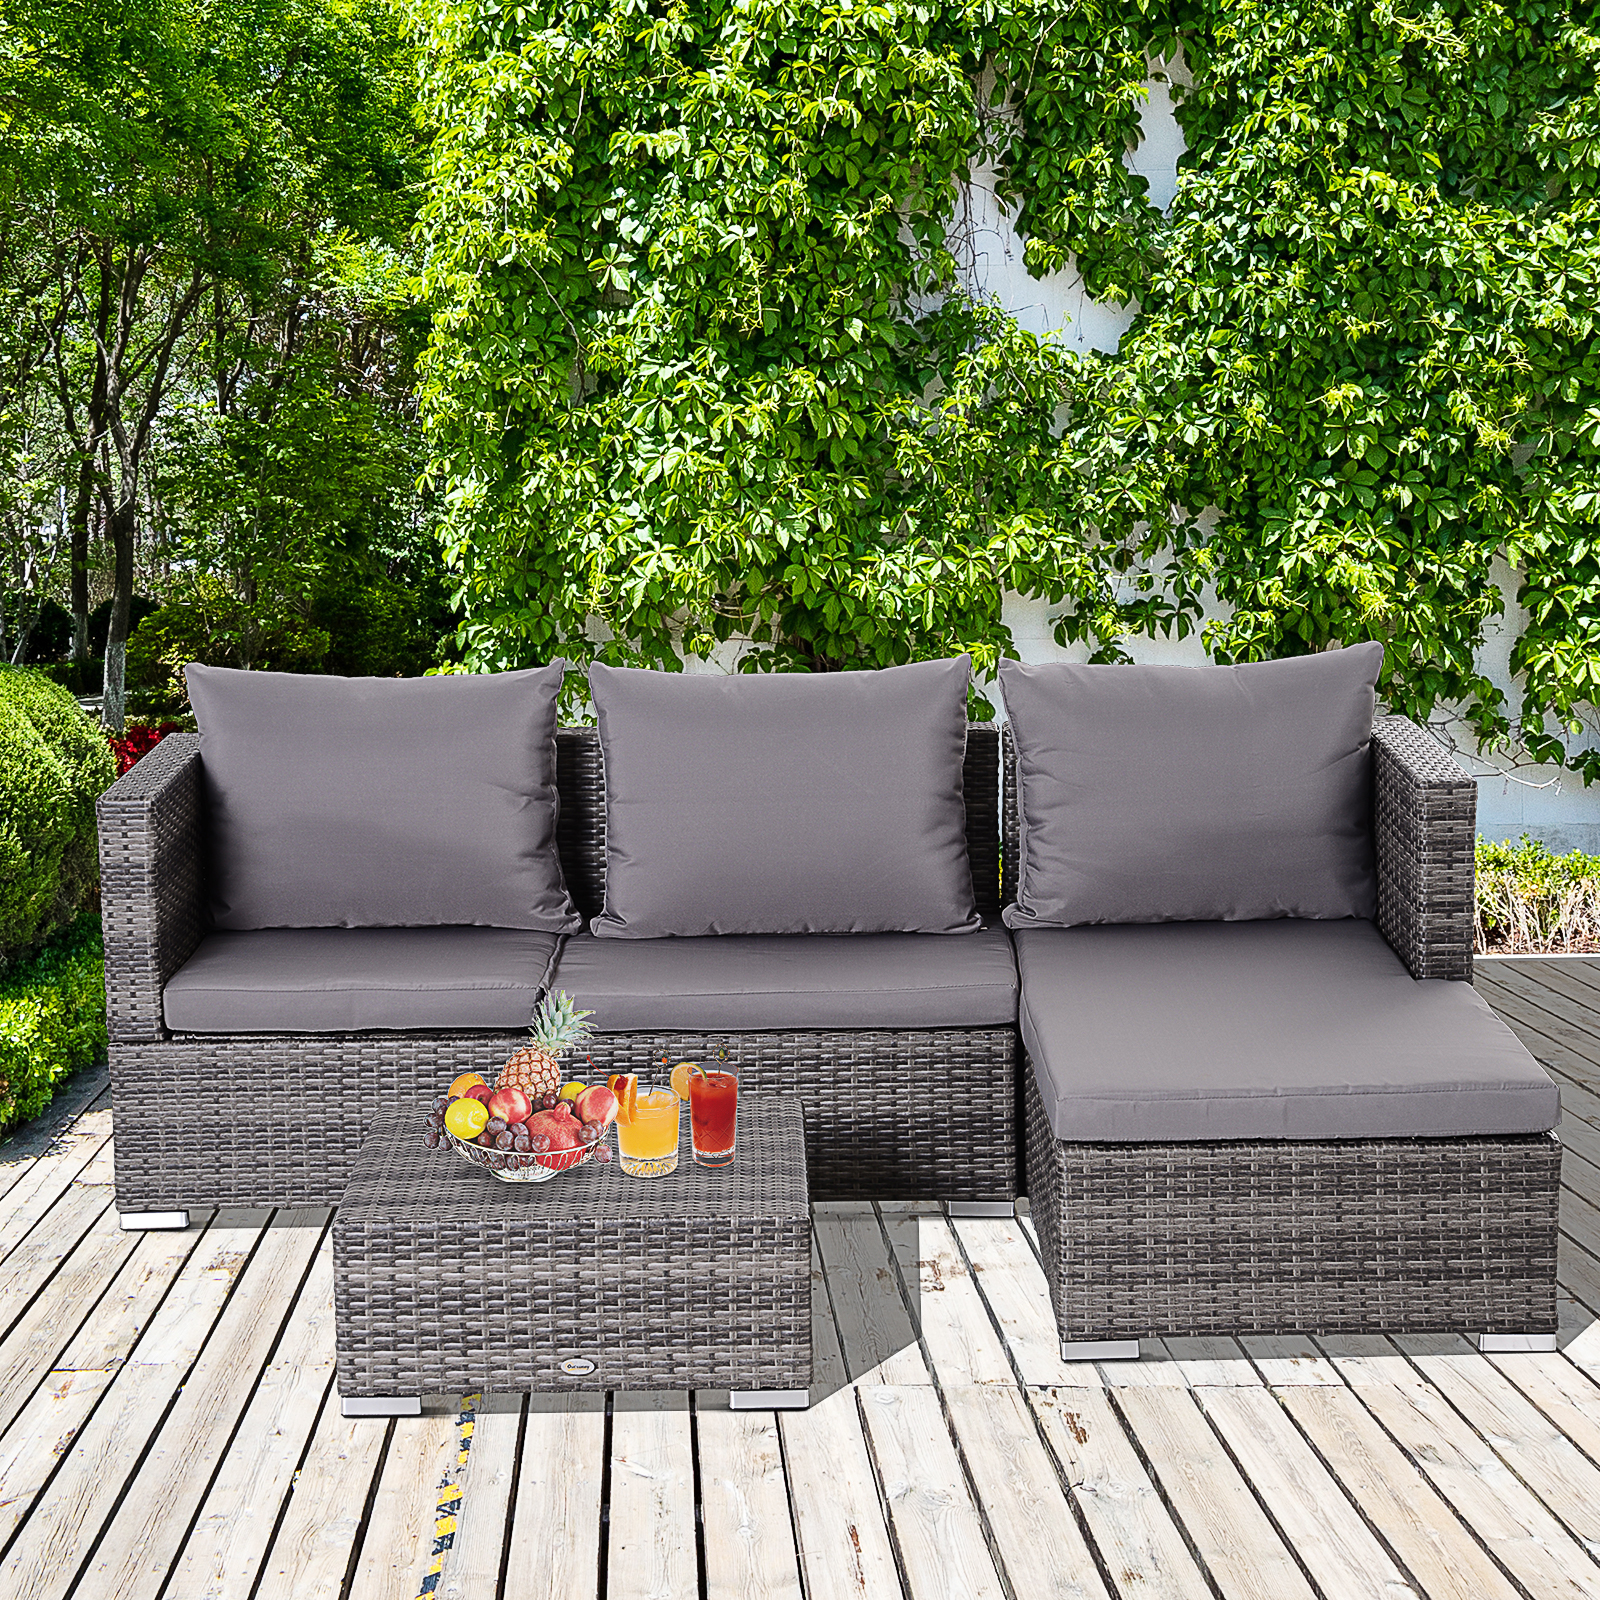 3-Piece-Adjustable-Seat-Rattan-Wicker-Sofa-Set-Sleeping-Couch-Bed-Lounge-Grey